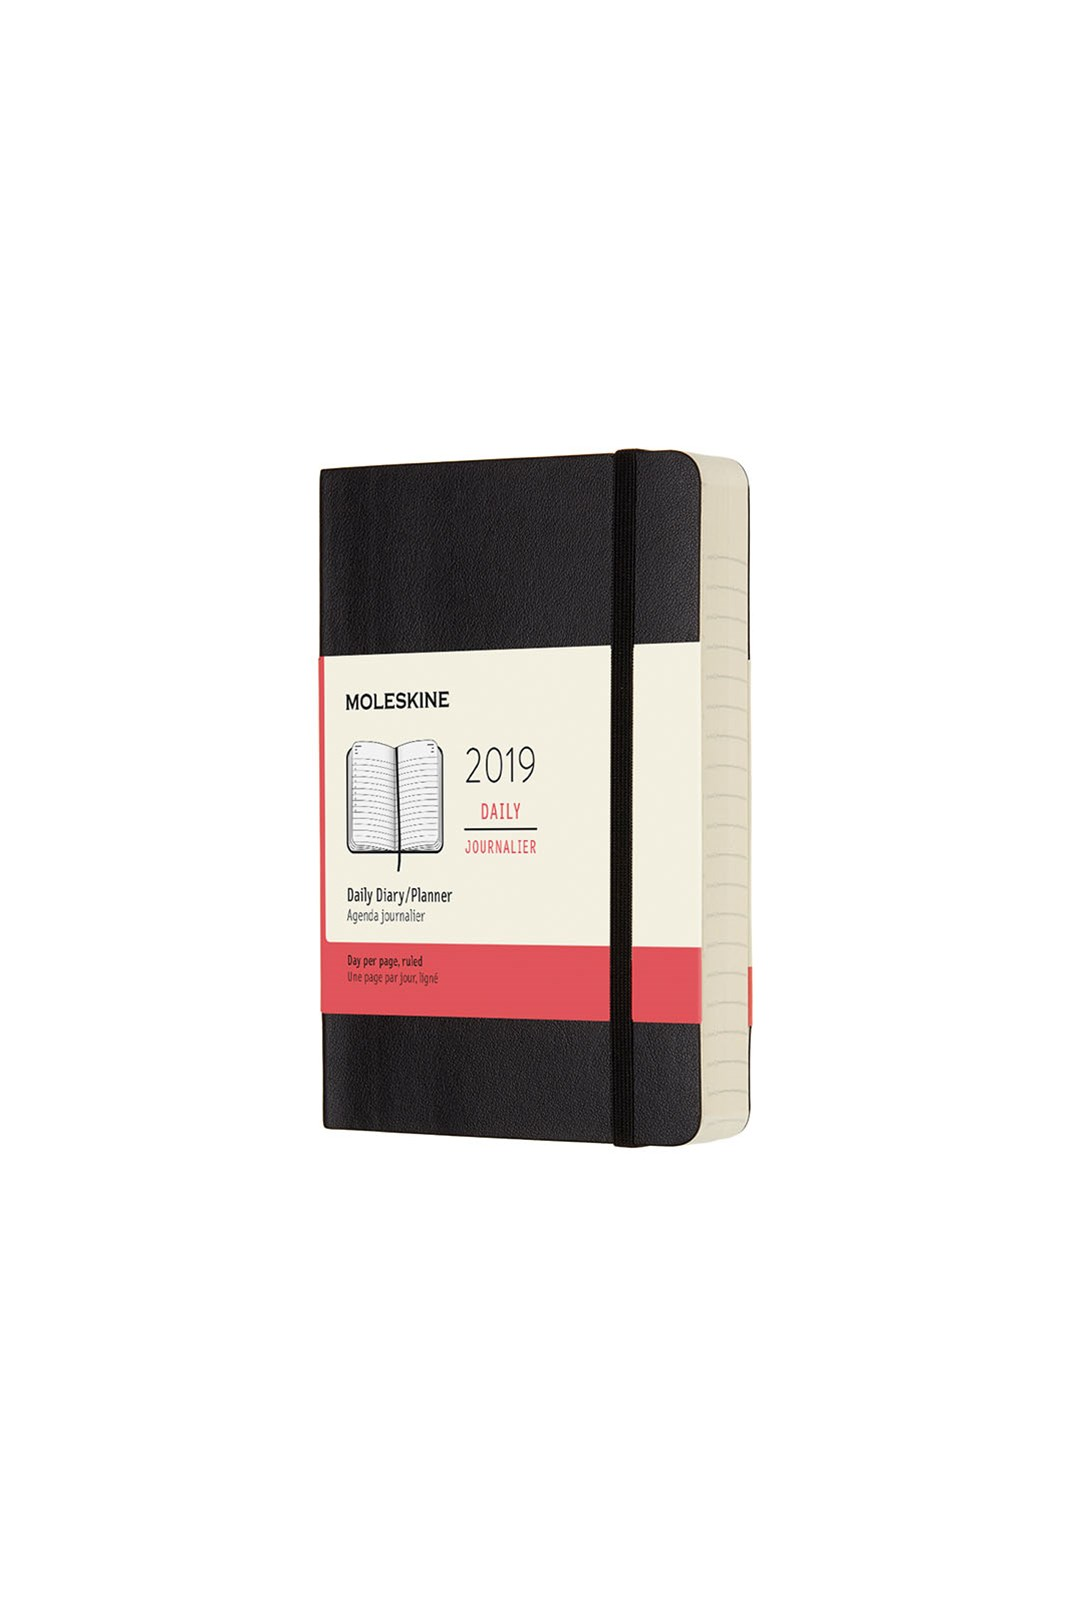 Moleskine - 2019 Soft Cover Diary - Daily - Pocket - Black